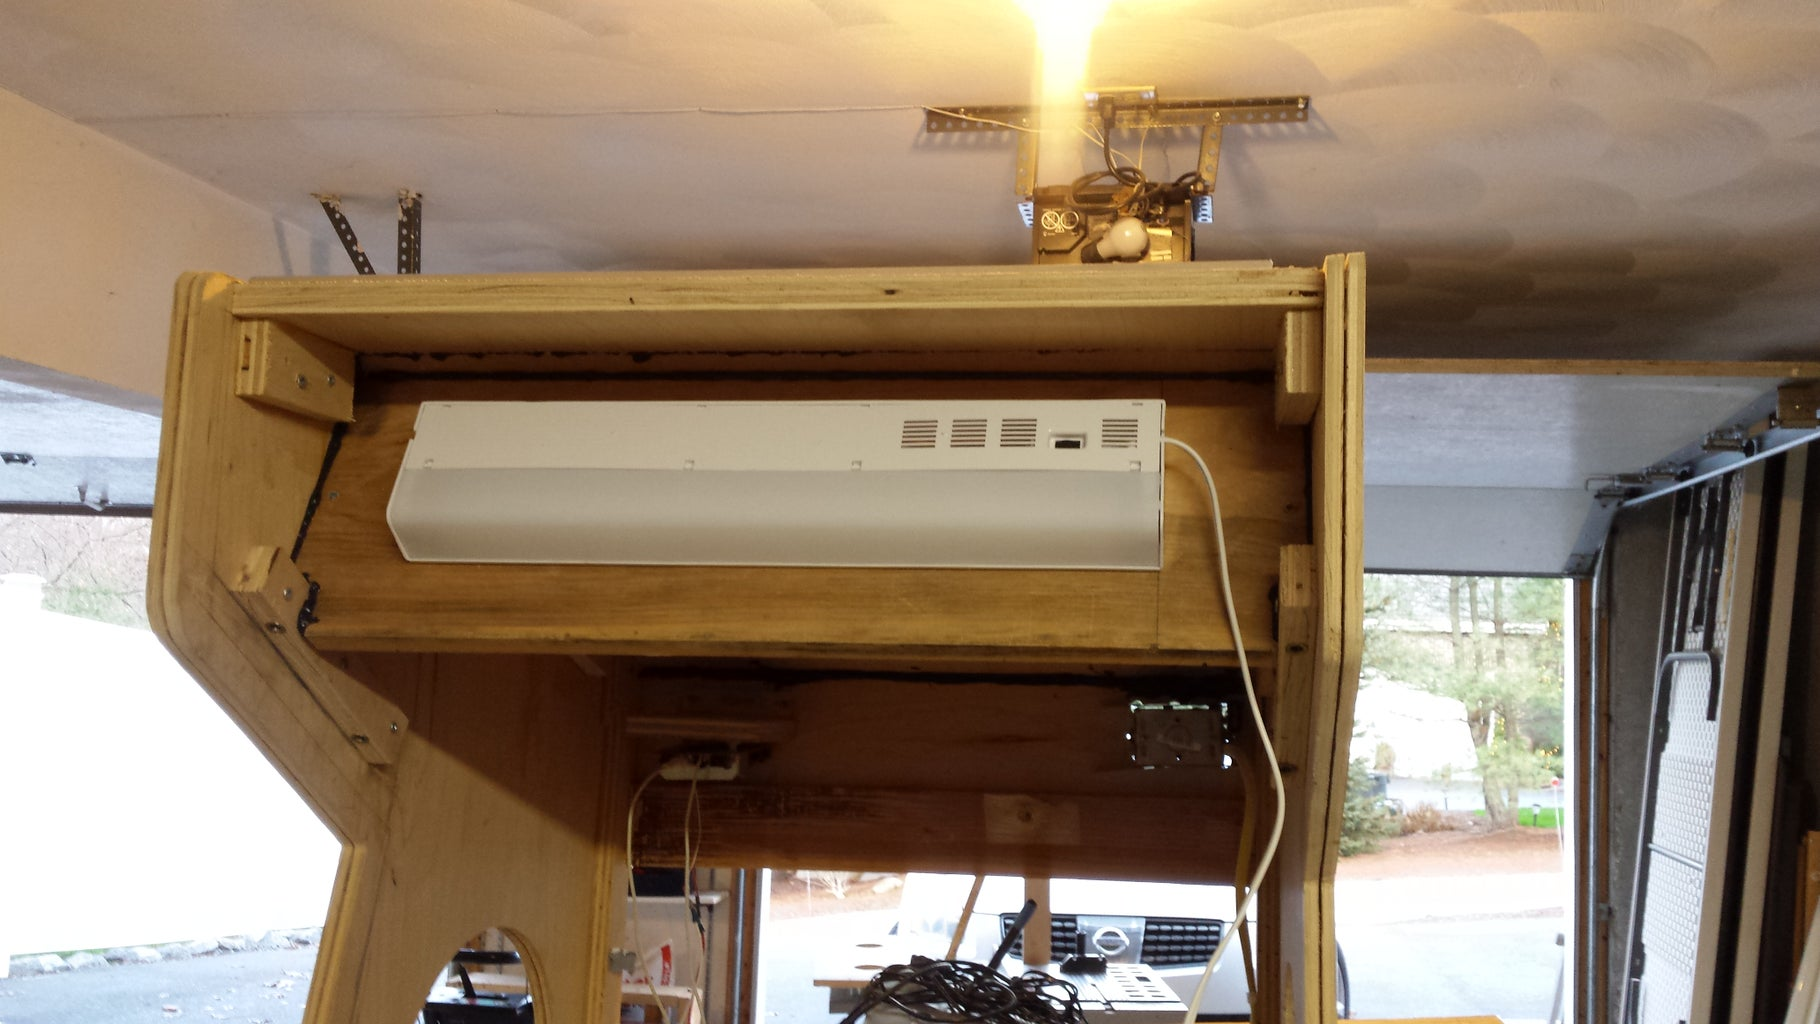 Install Mount for Marquee Backlight